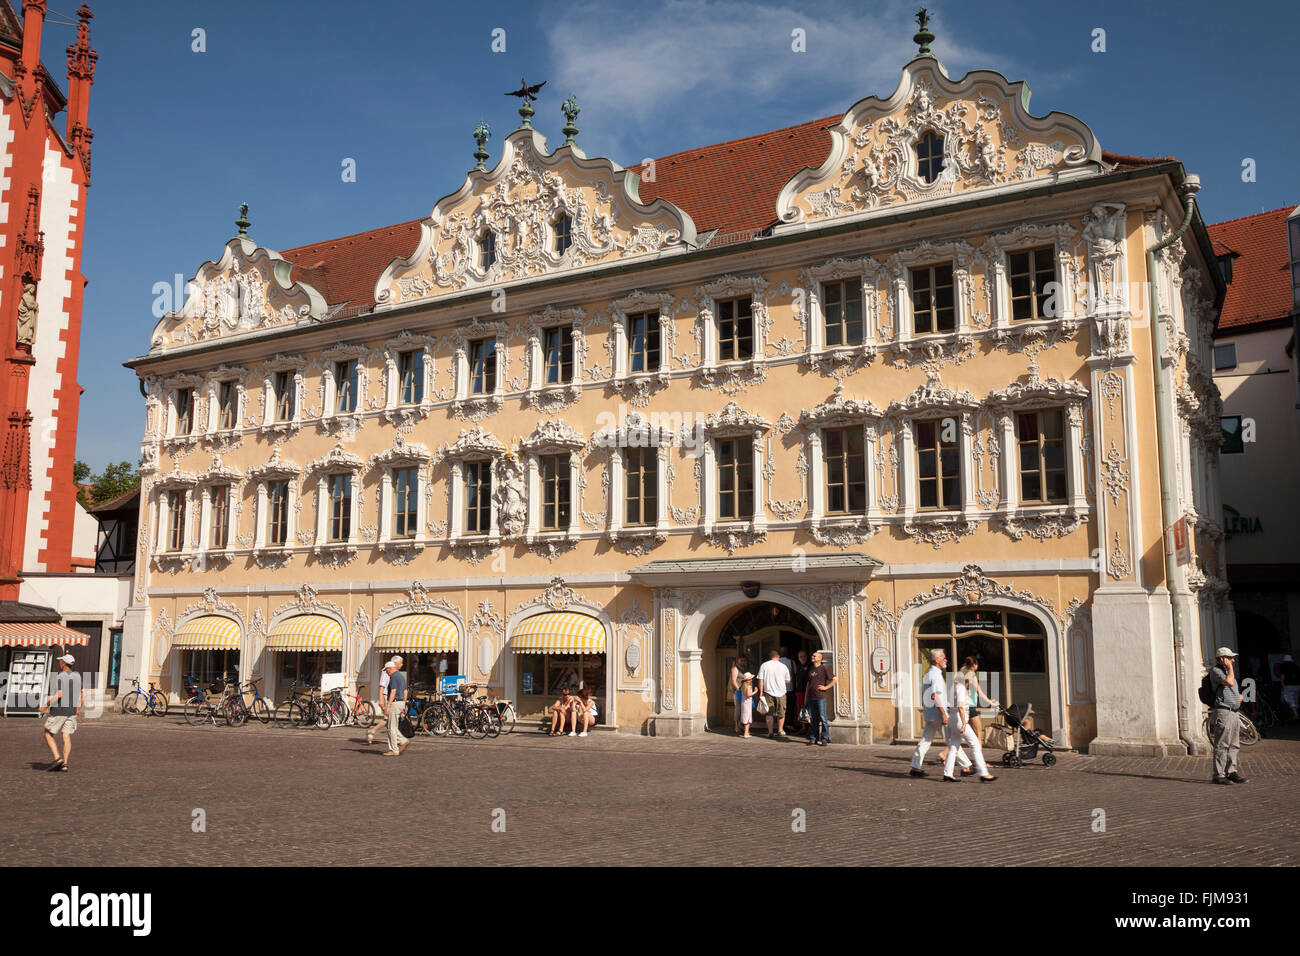 geography / travel, Germany, Bavaria, Würzburg, building, Falcon house with the tourist information, exterior - Stock Image